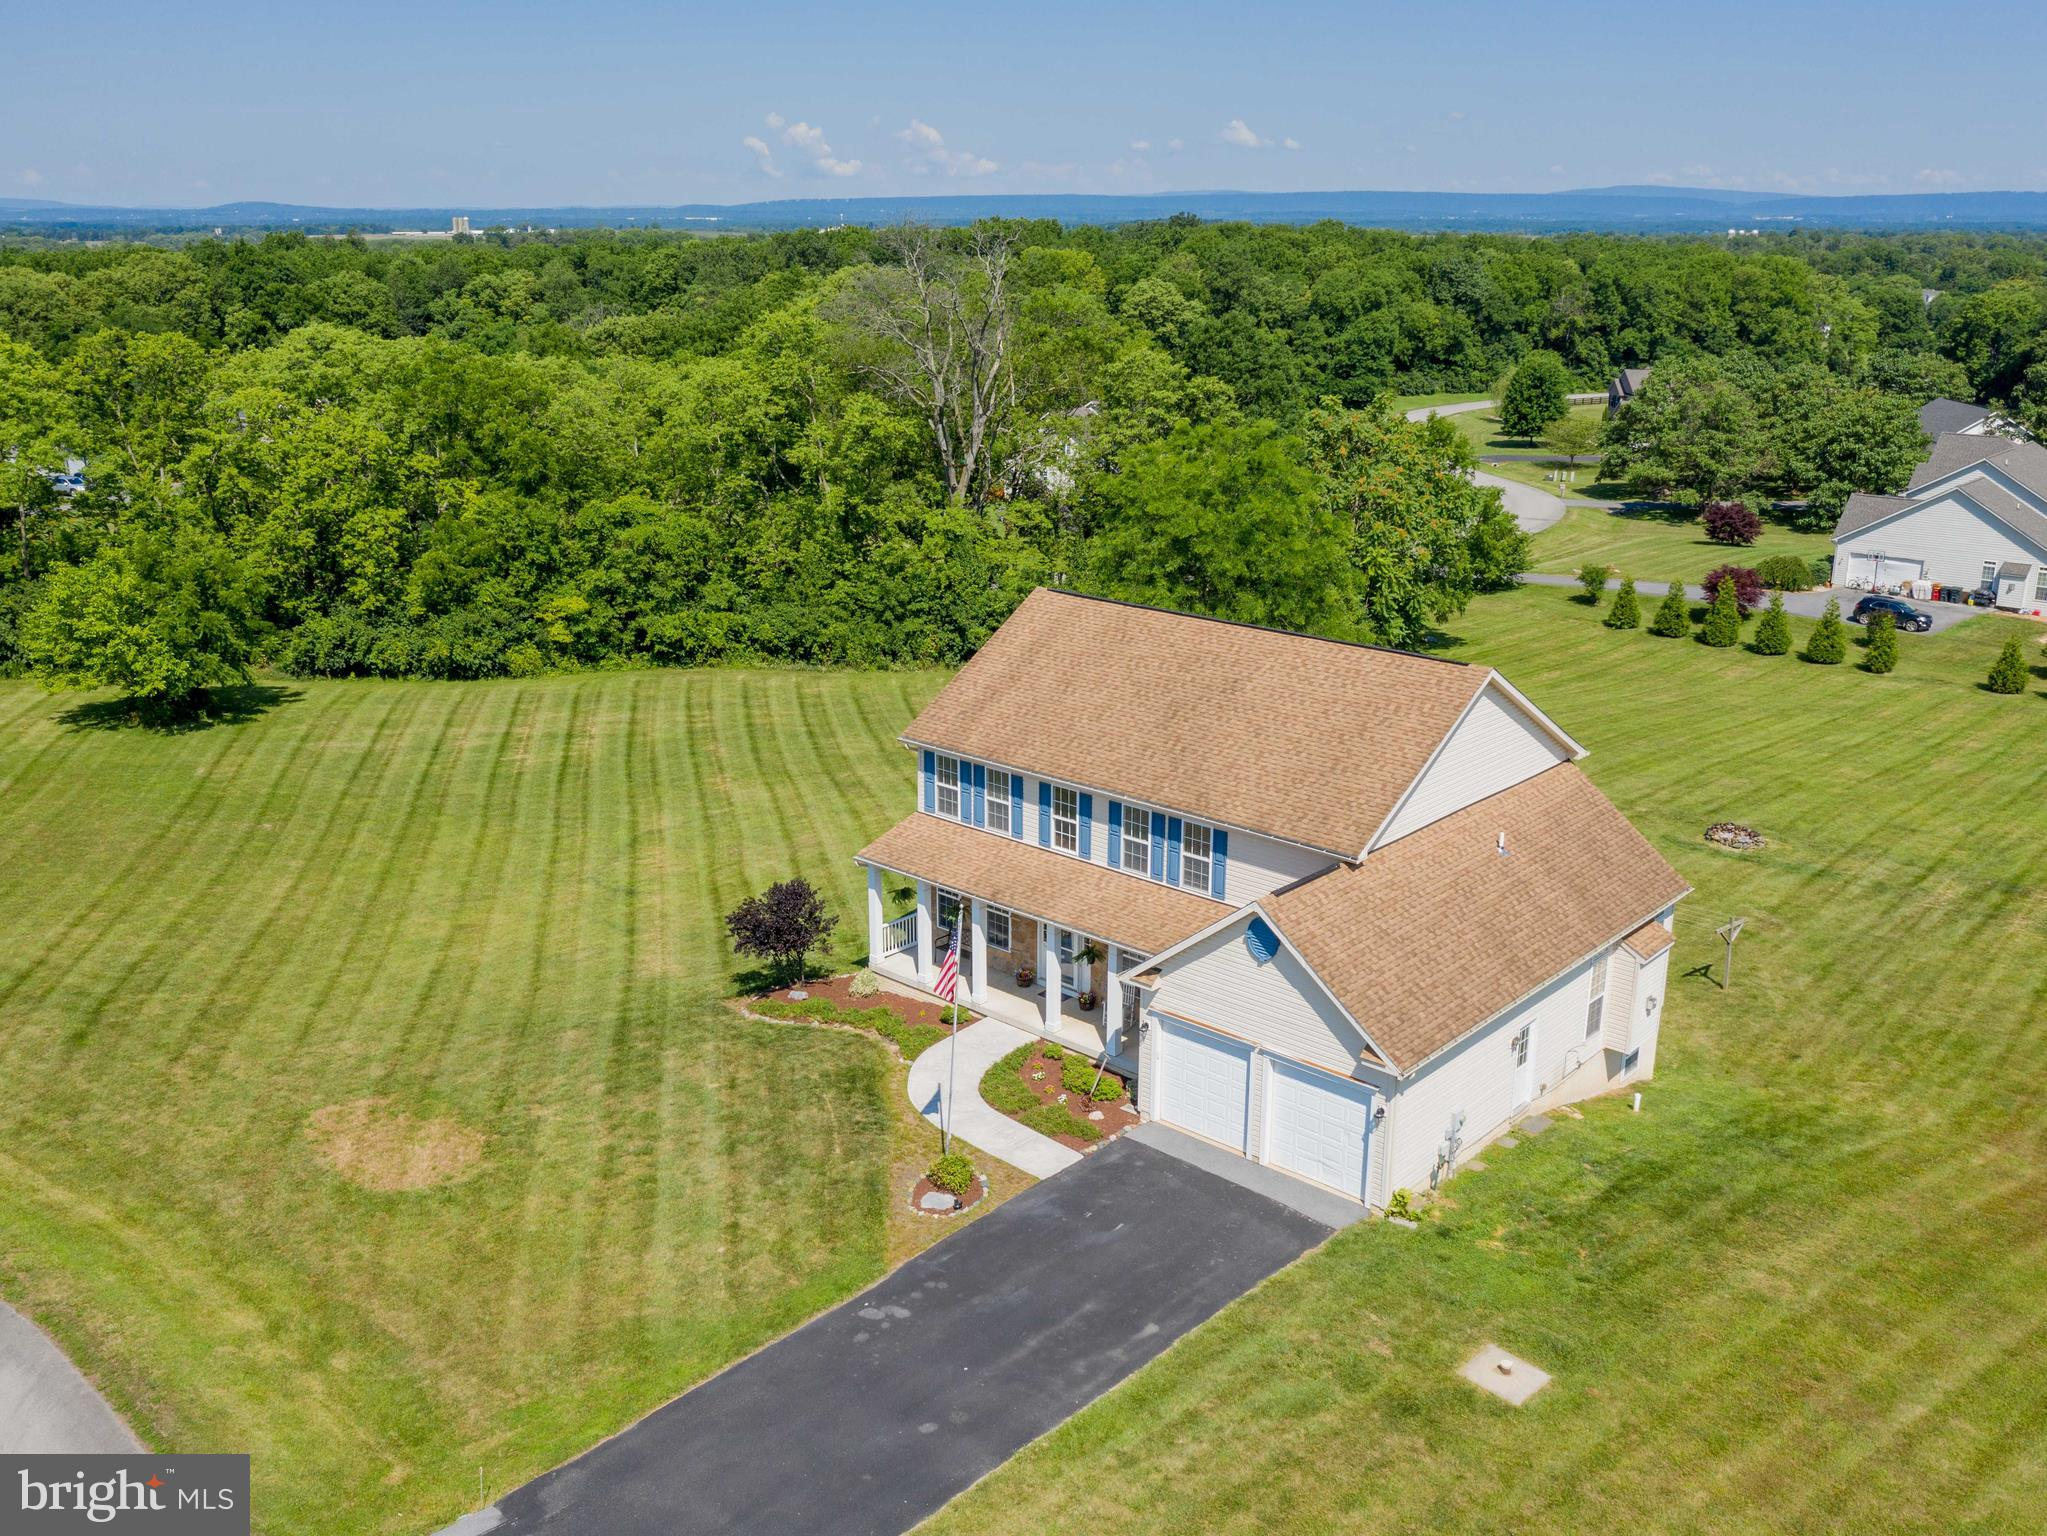 So many great features bundled into one home! Enjoy living in a country setting with gorgeous views